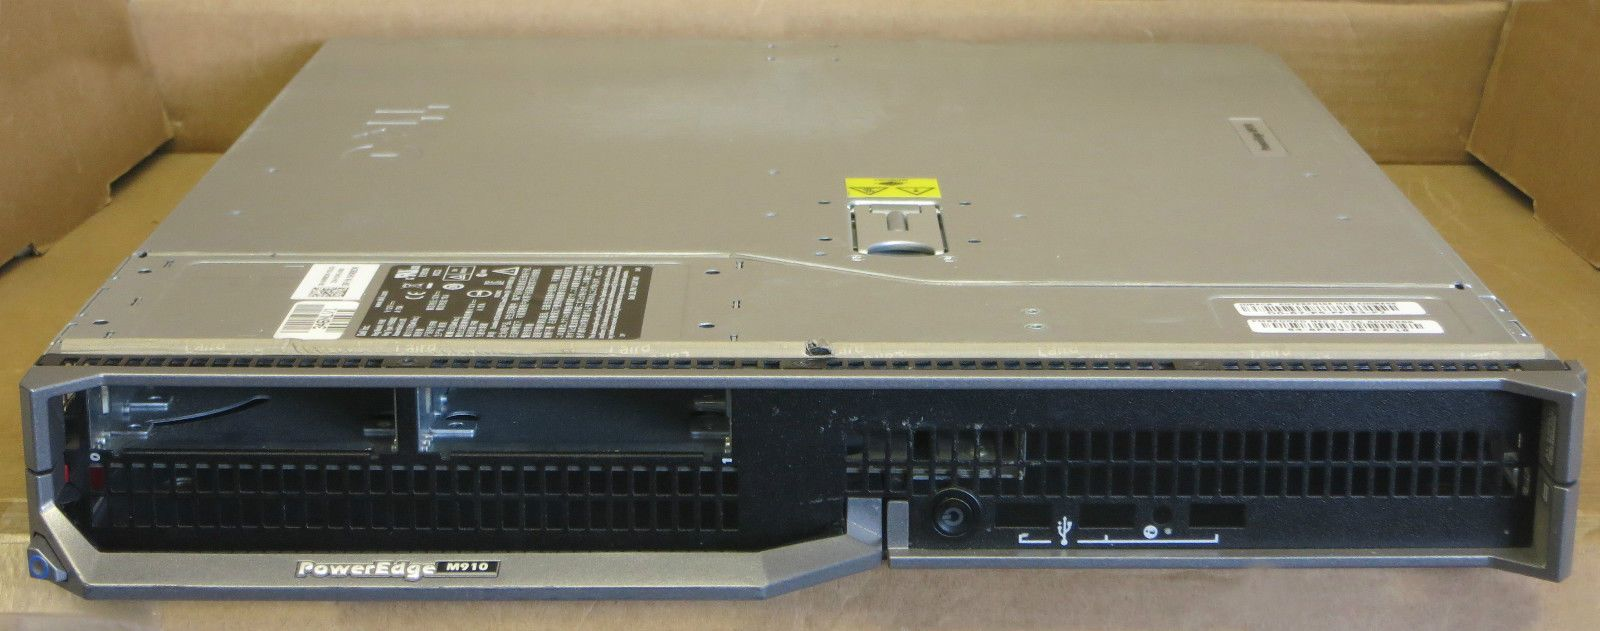 DELL POWEREDGE BLADE M910 SERVER